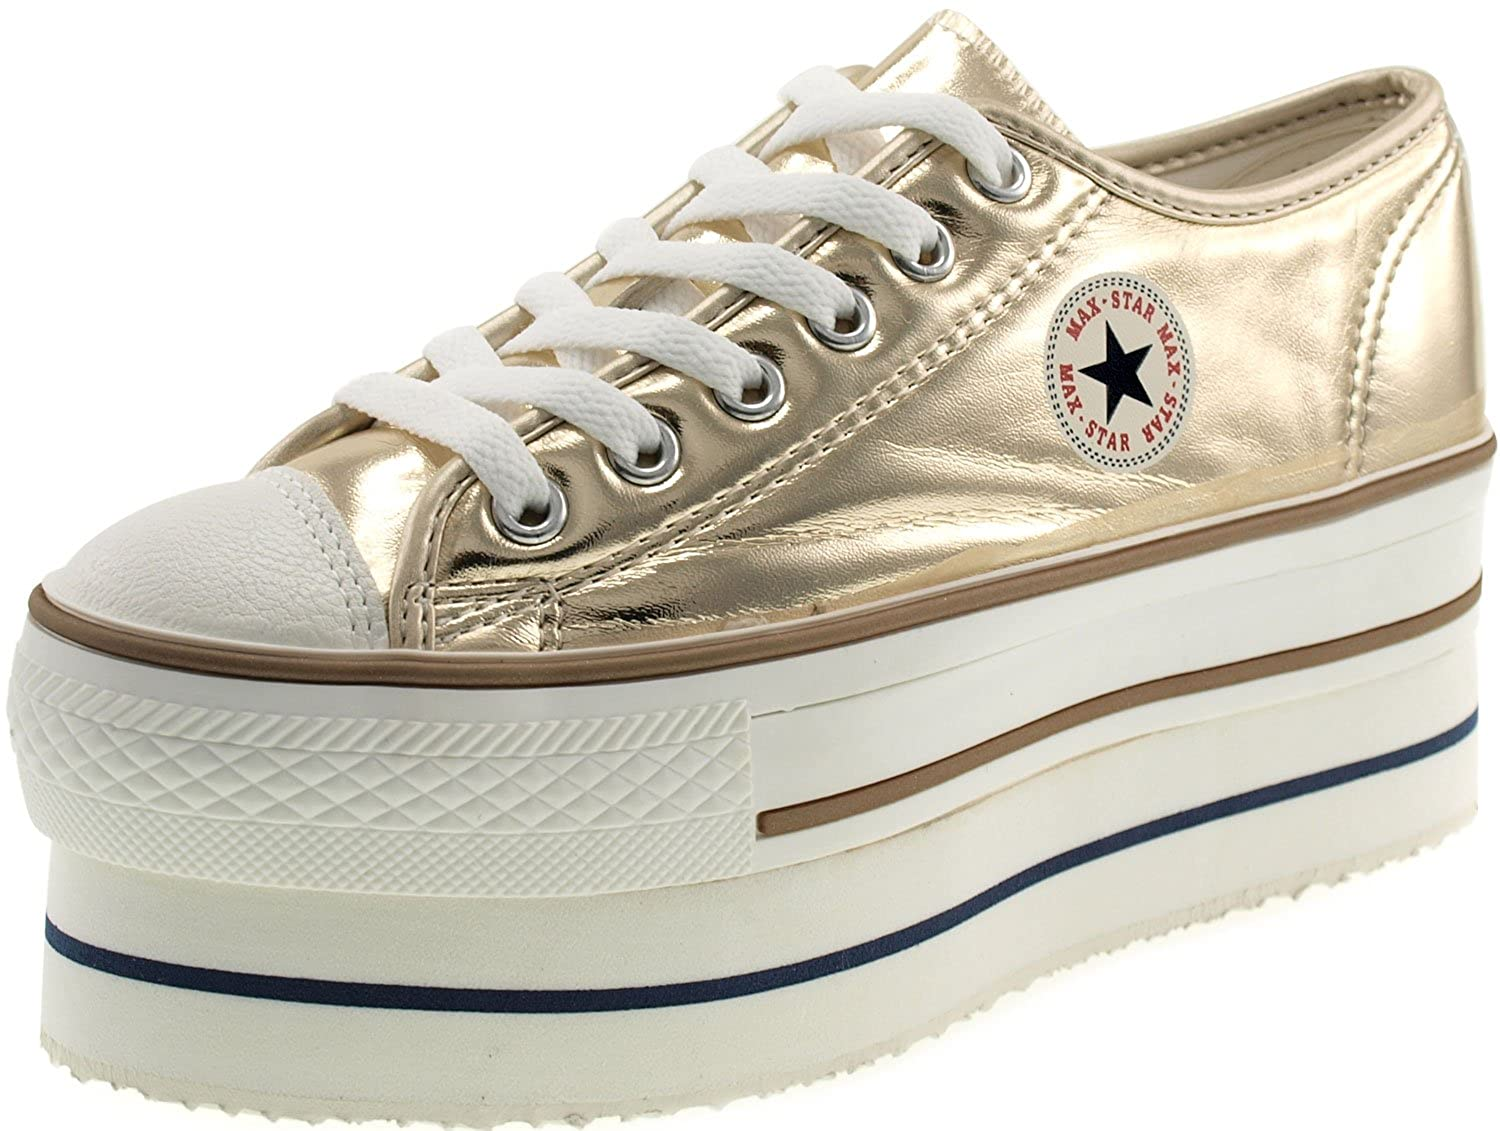 be75cd7c9b5d Amazon.com | Maxstar Women's CN9 6 Holes Double Platform TC Low Top Sneakers  | Fashion Sneakers